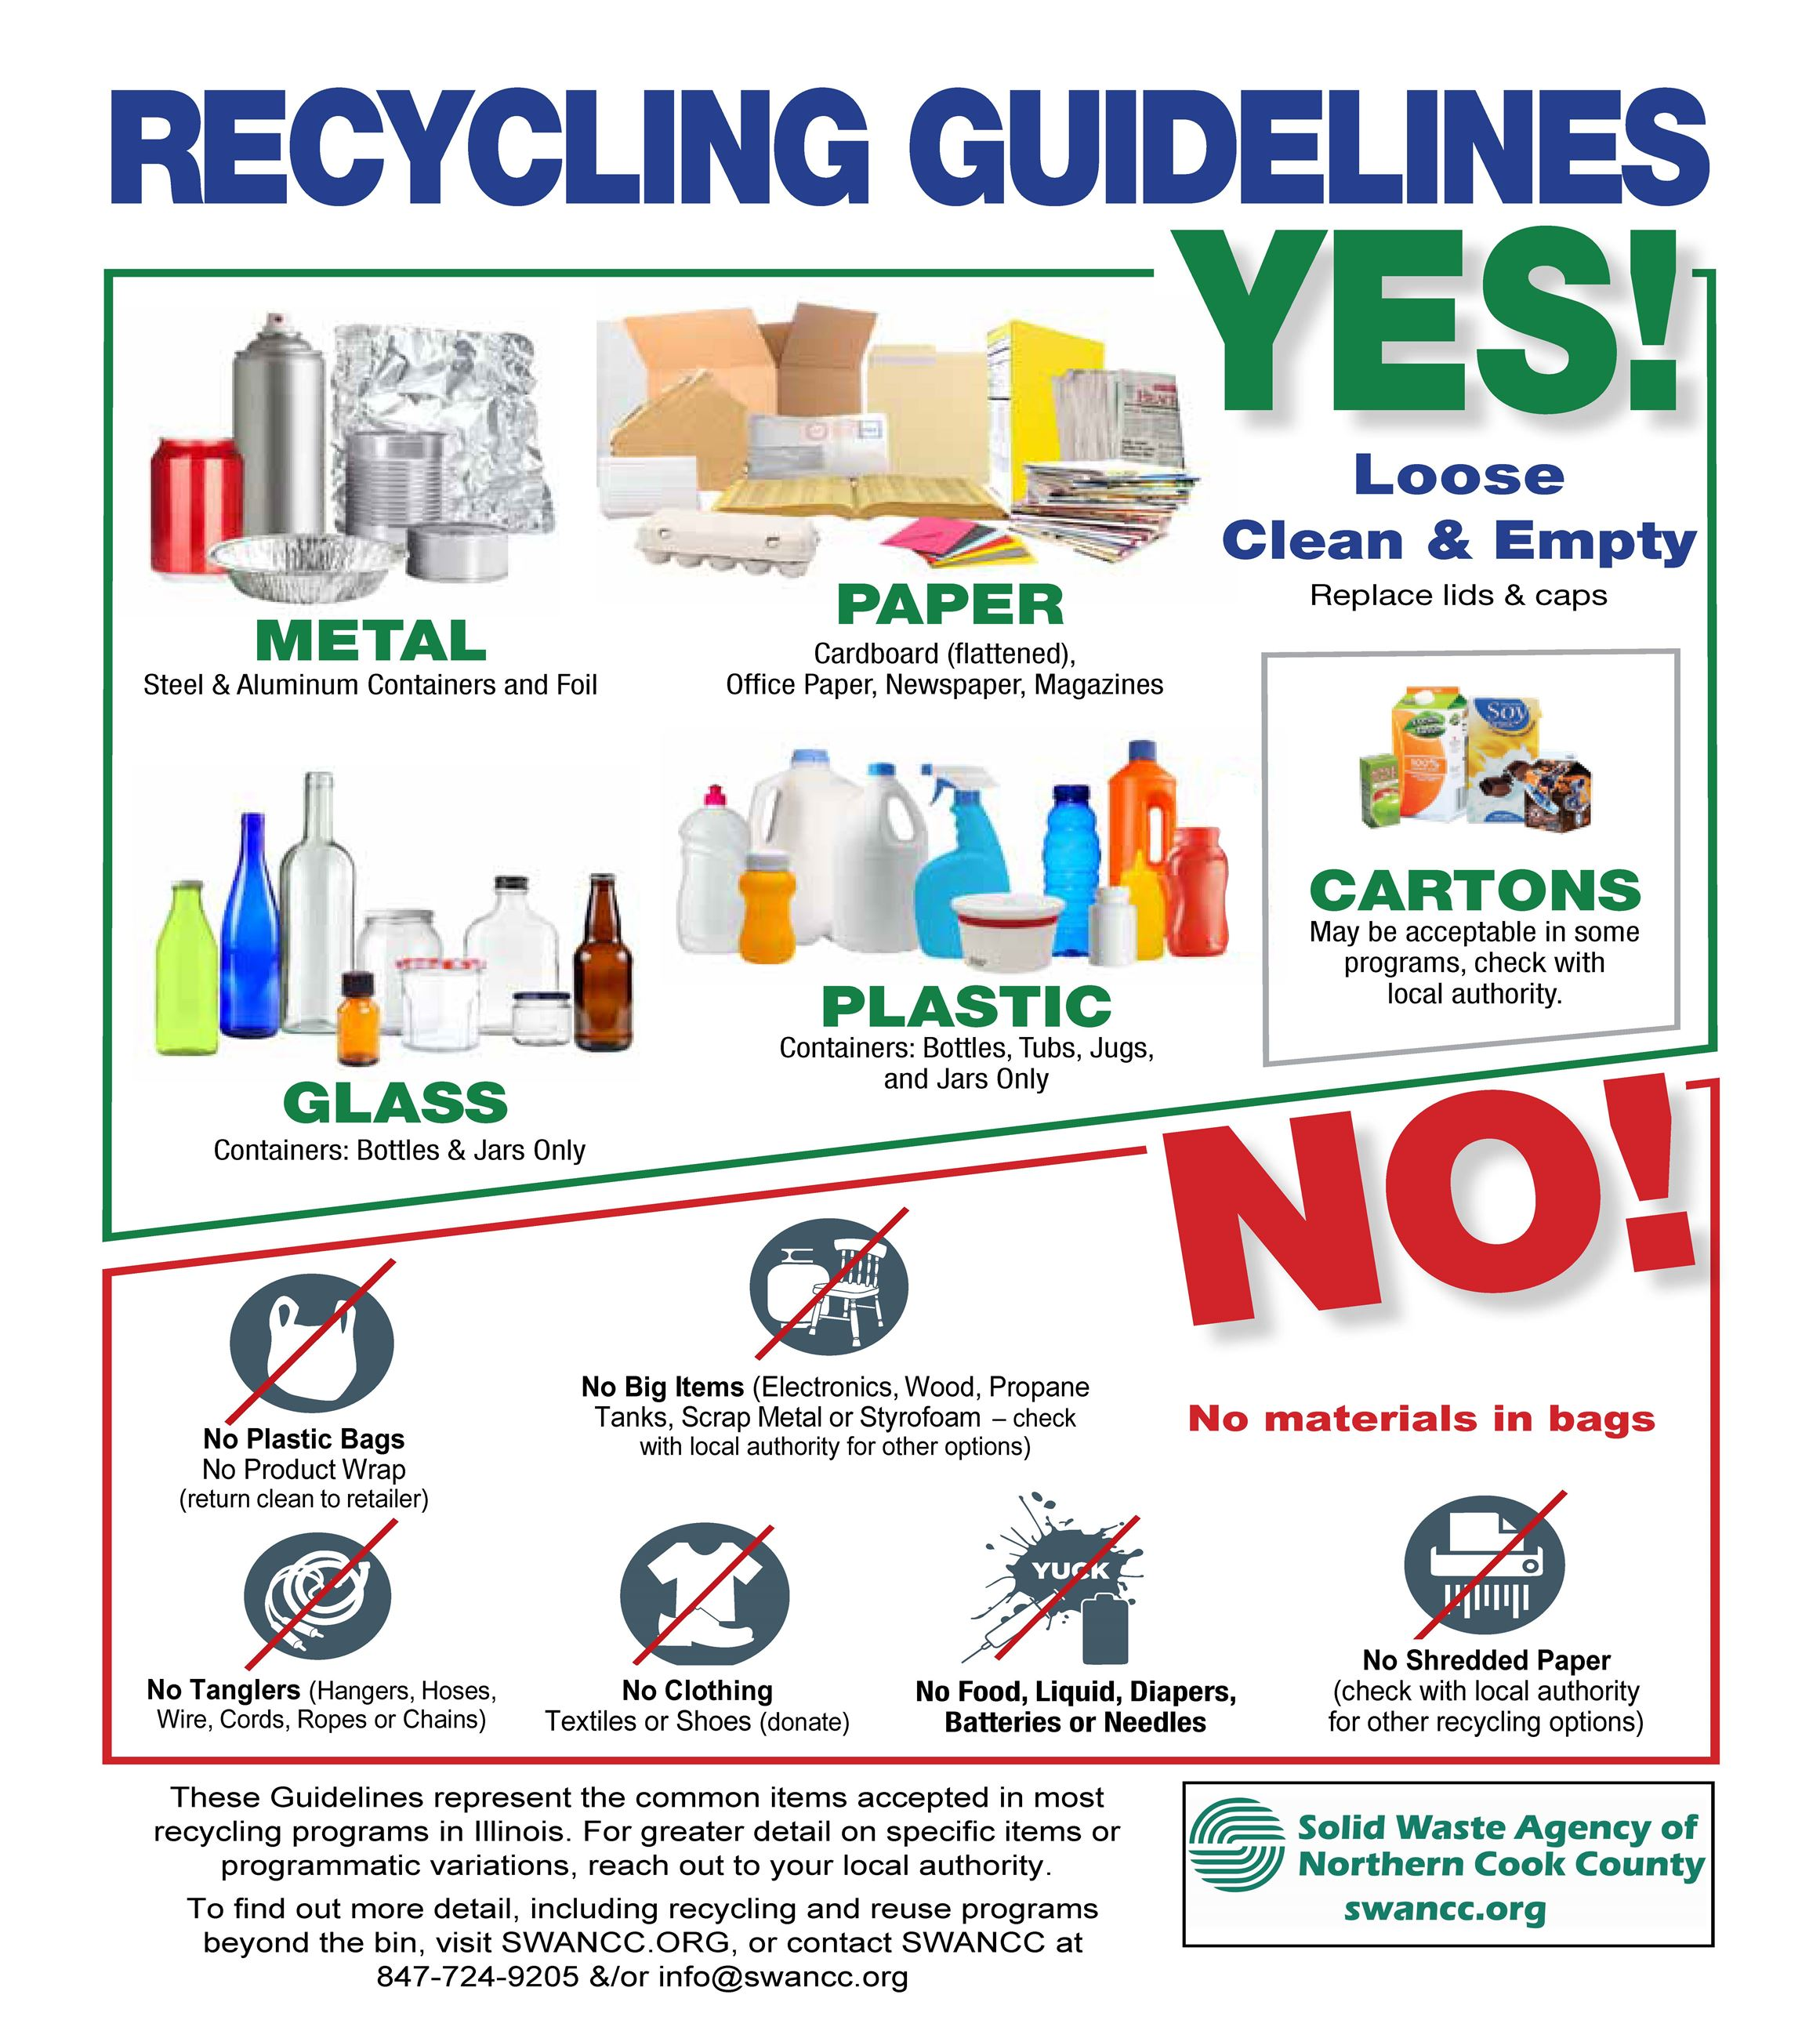 SWANCC Recycling Guidelines